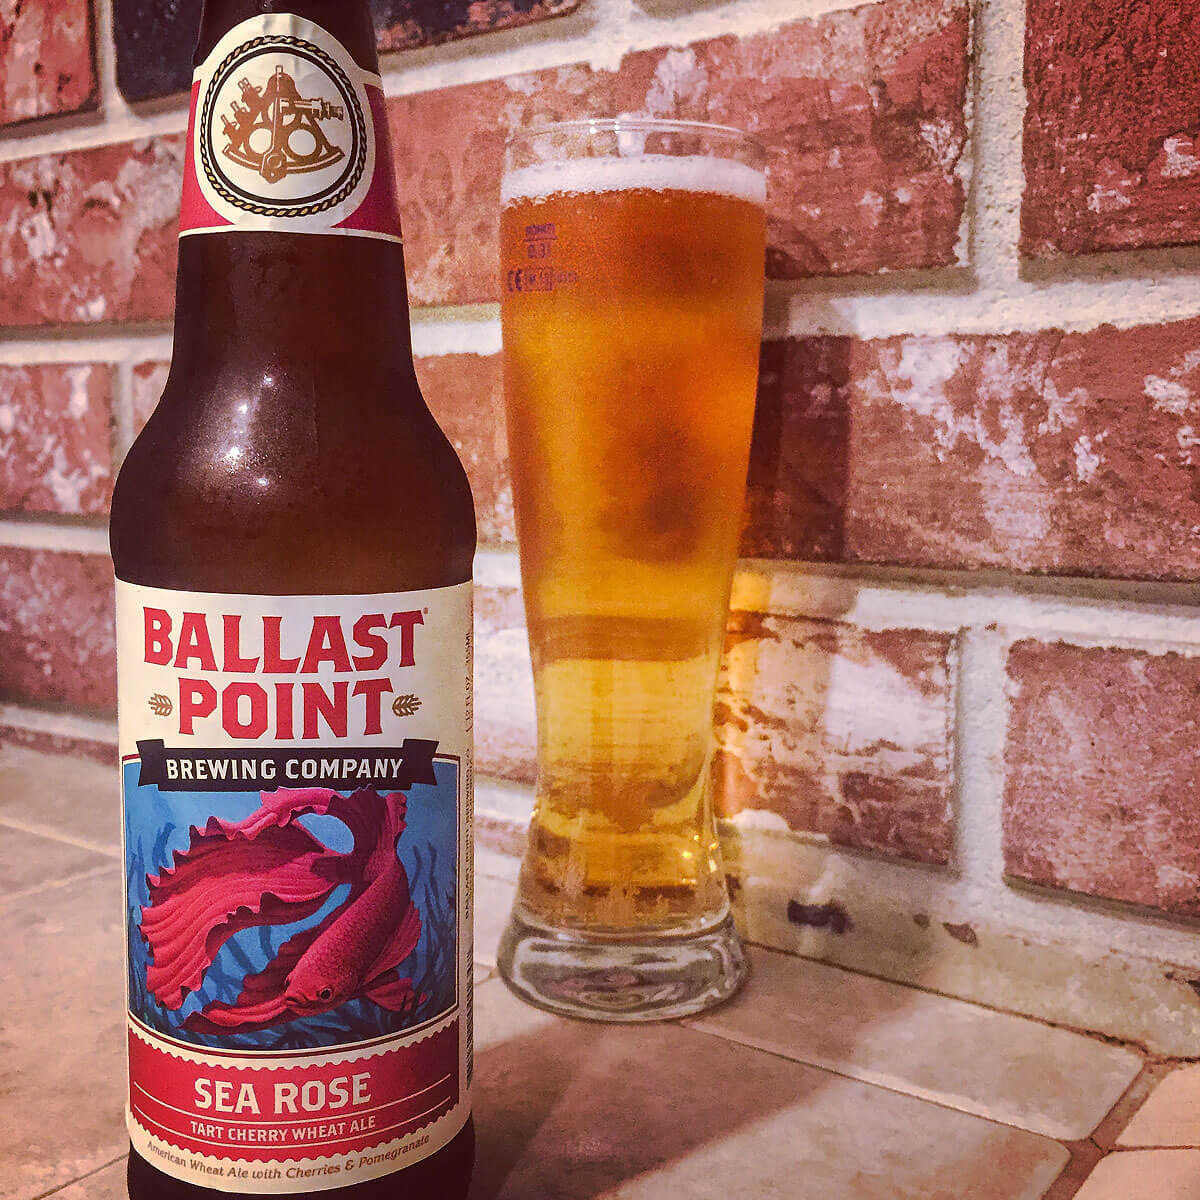 Sea Rose, an American Wheat Ale by Ballast Point Brewing Company